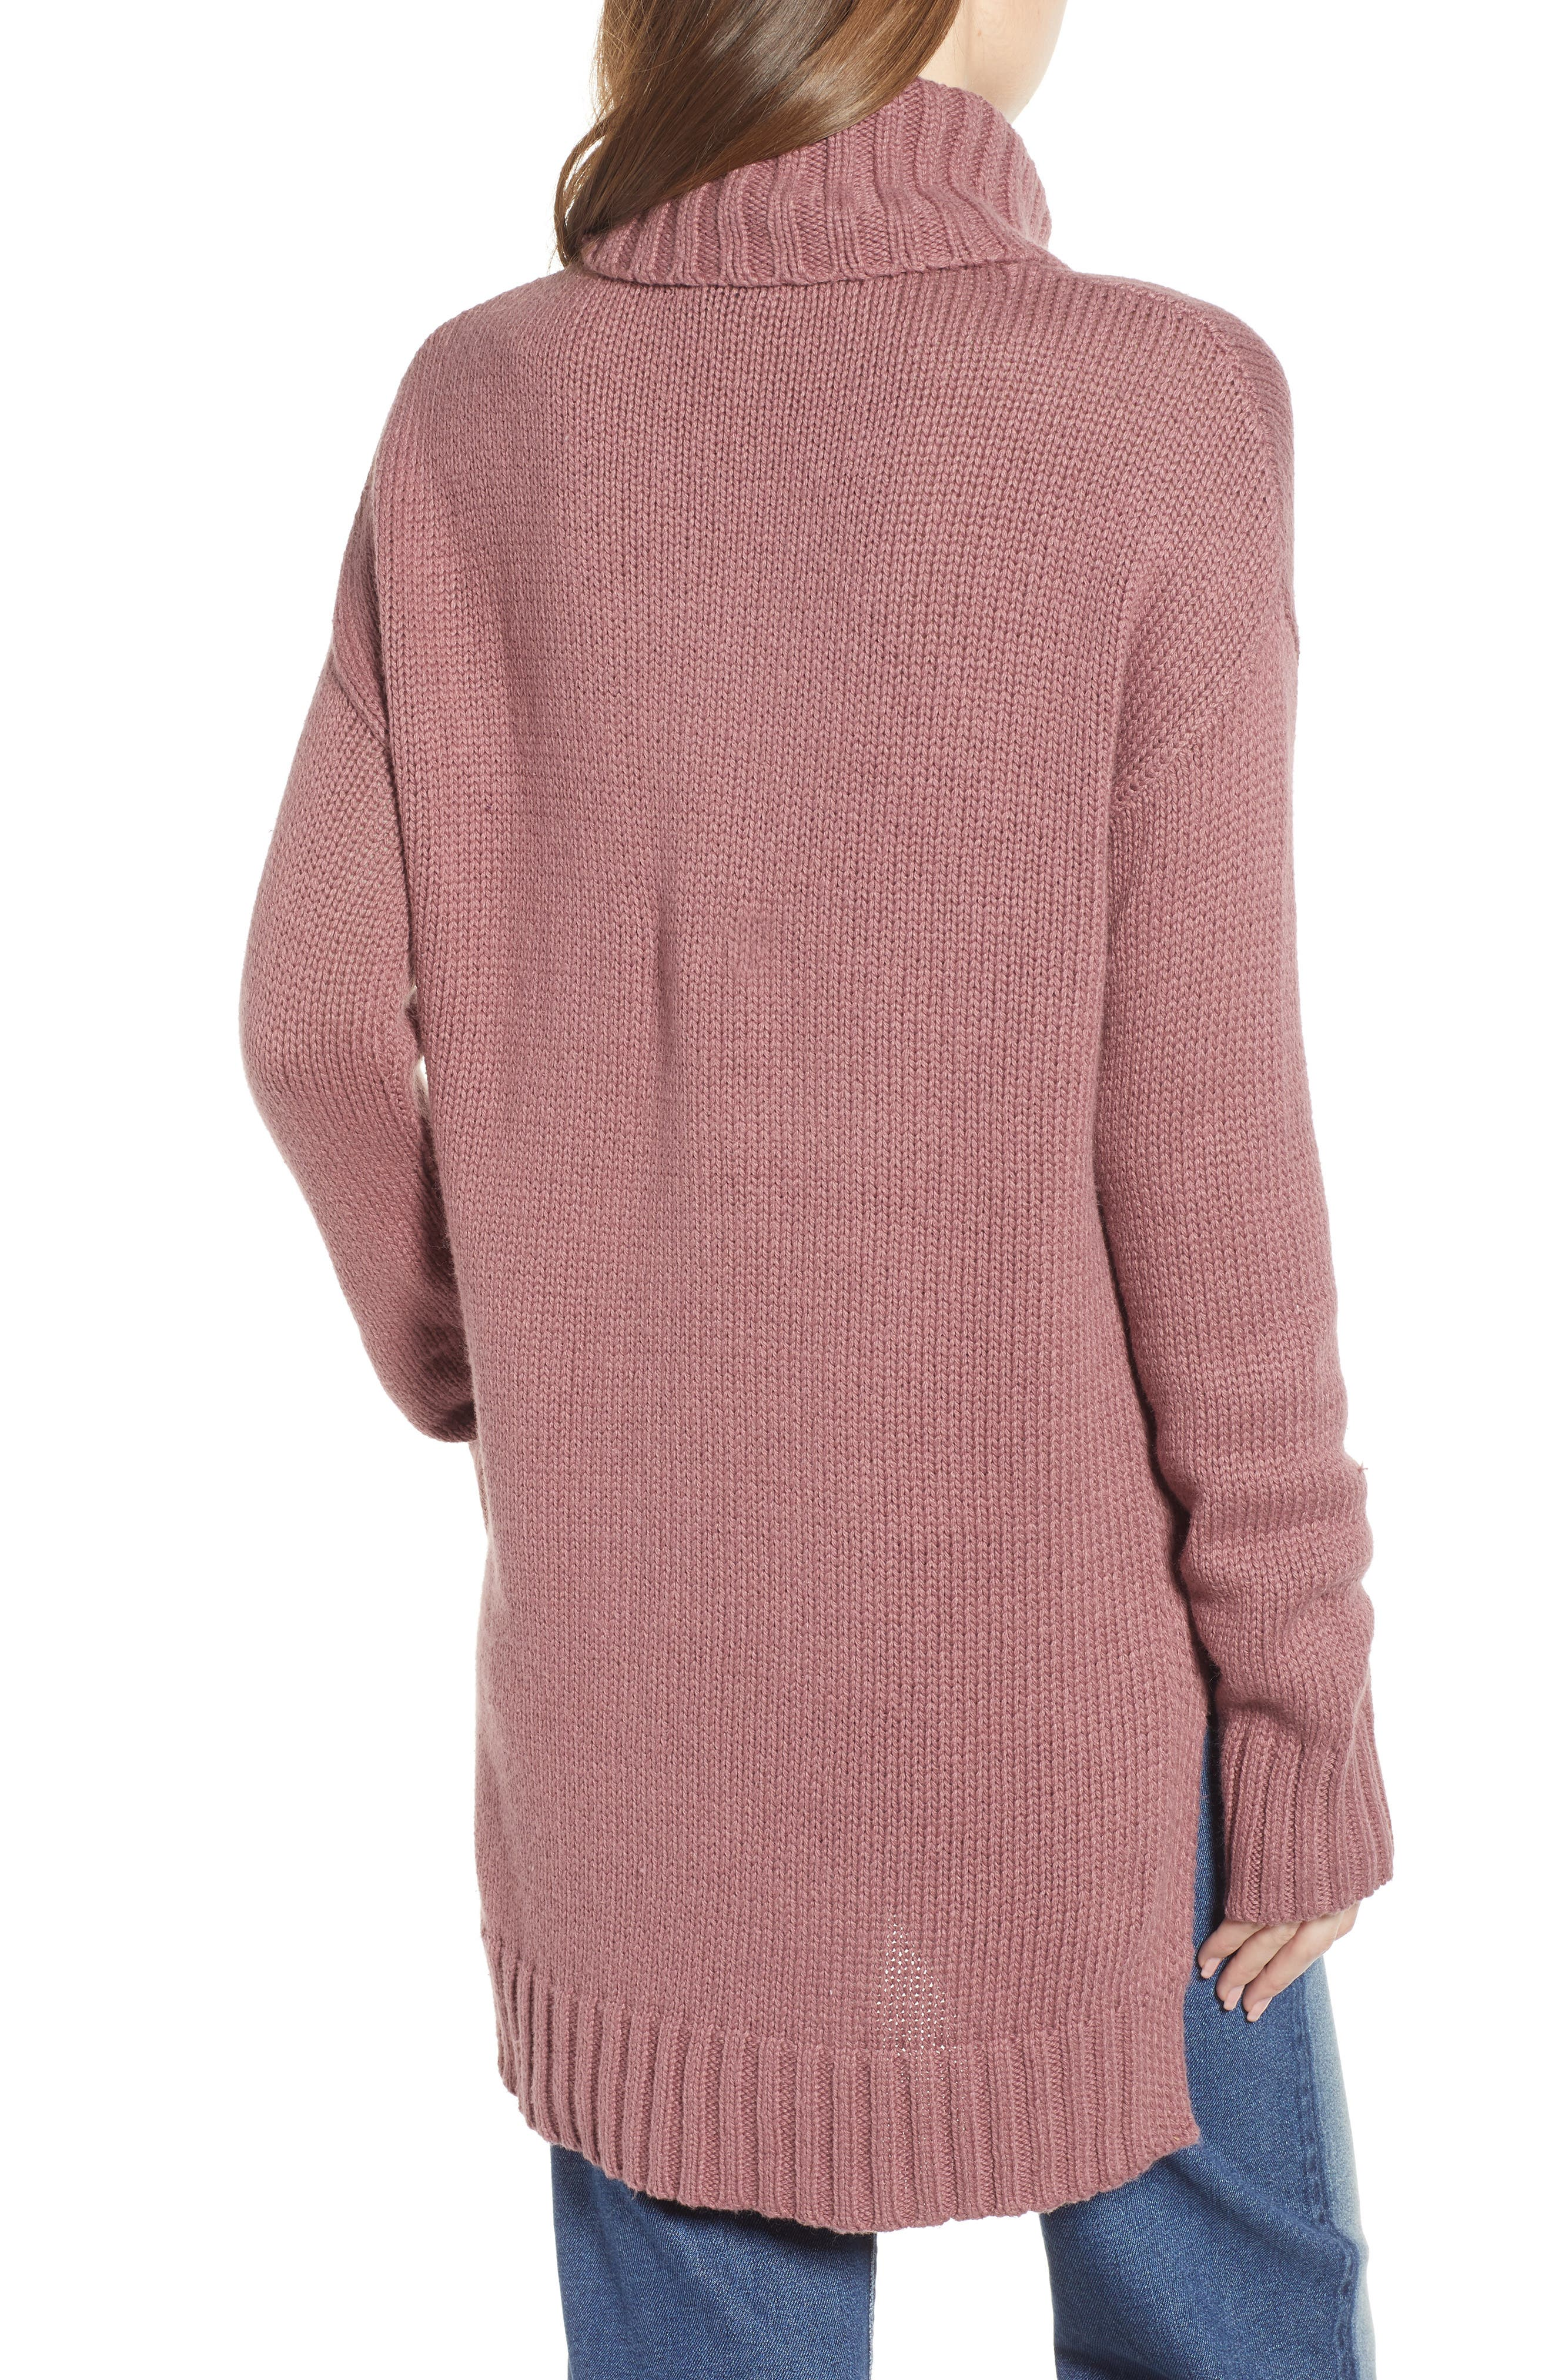 High/Low Turtleneck Sweater,                             Alternate thumbnail 2, color,                             PURPLE TAUPE